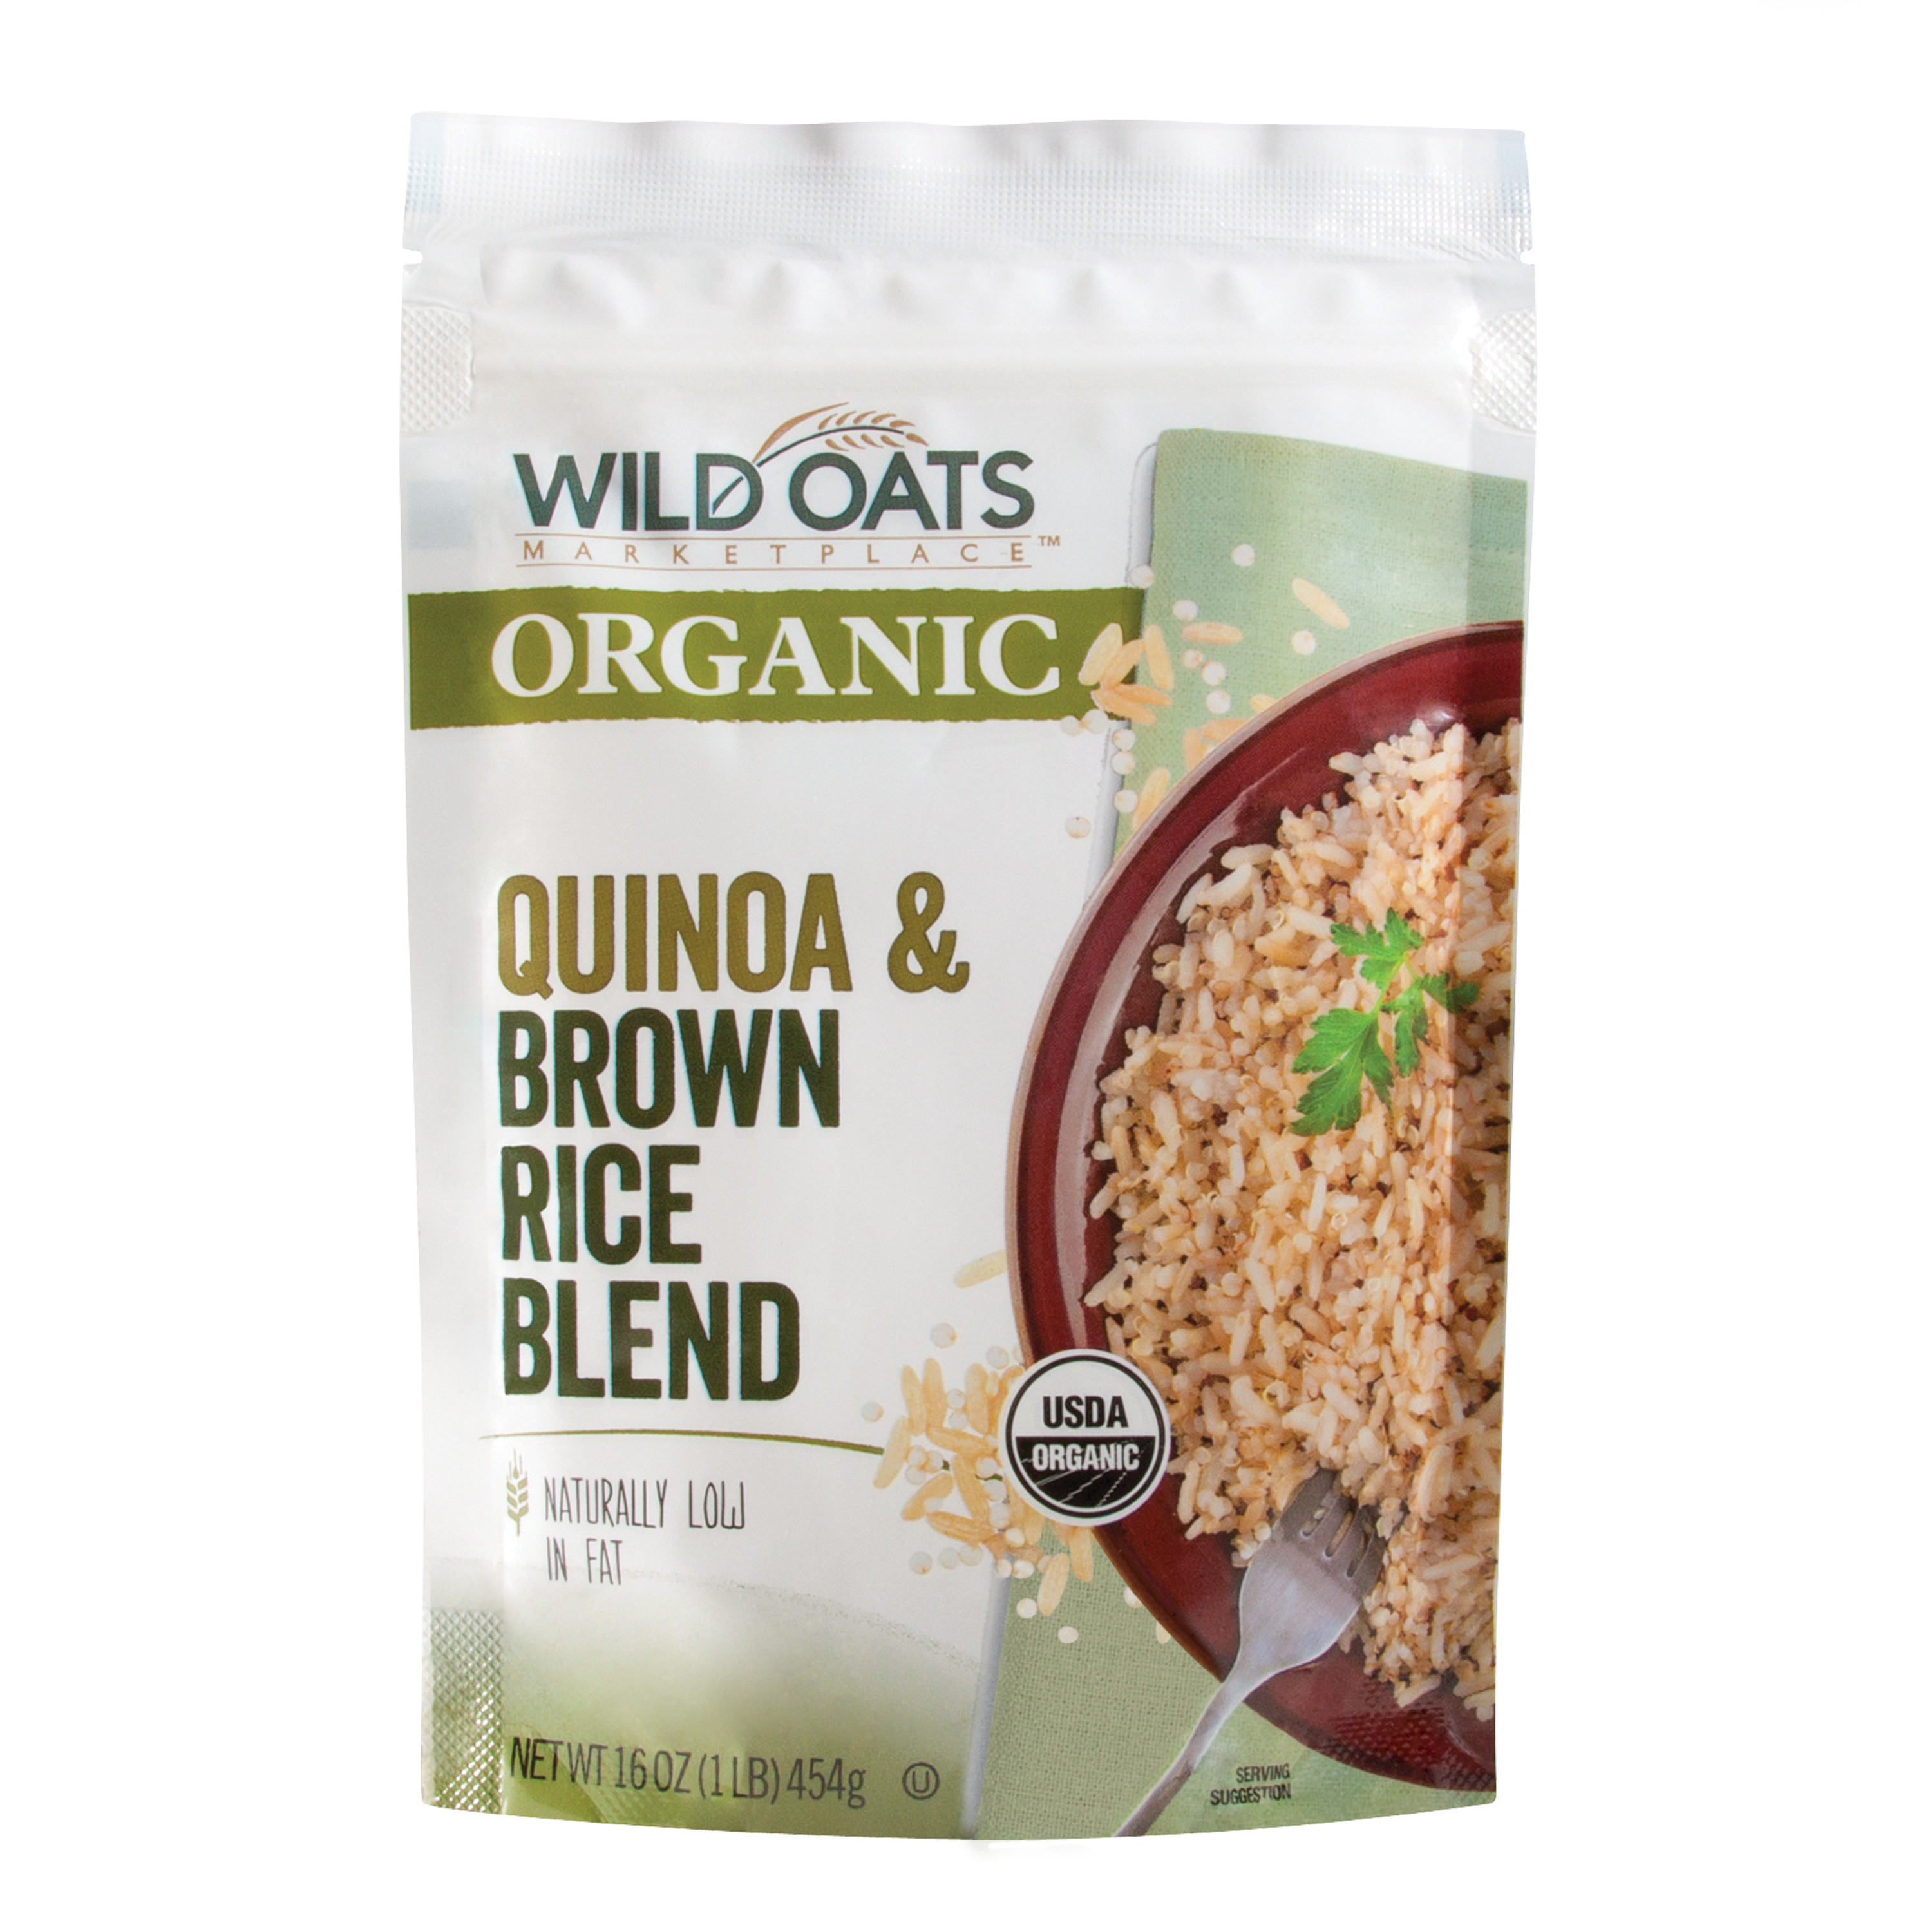 Organic Quinoa And Brown Rice  Wild Oats Marketplace Organic Quinoa & Brown Rice Blend